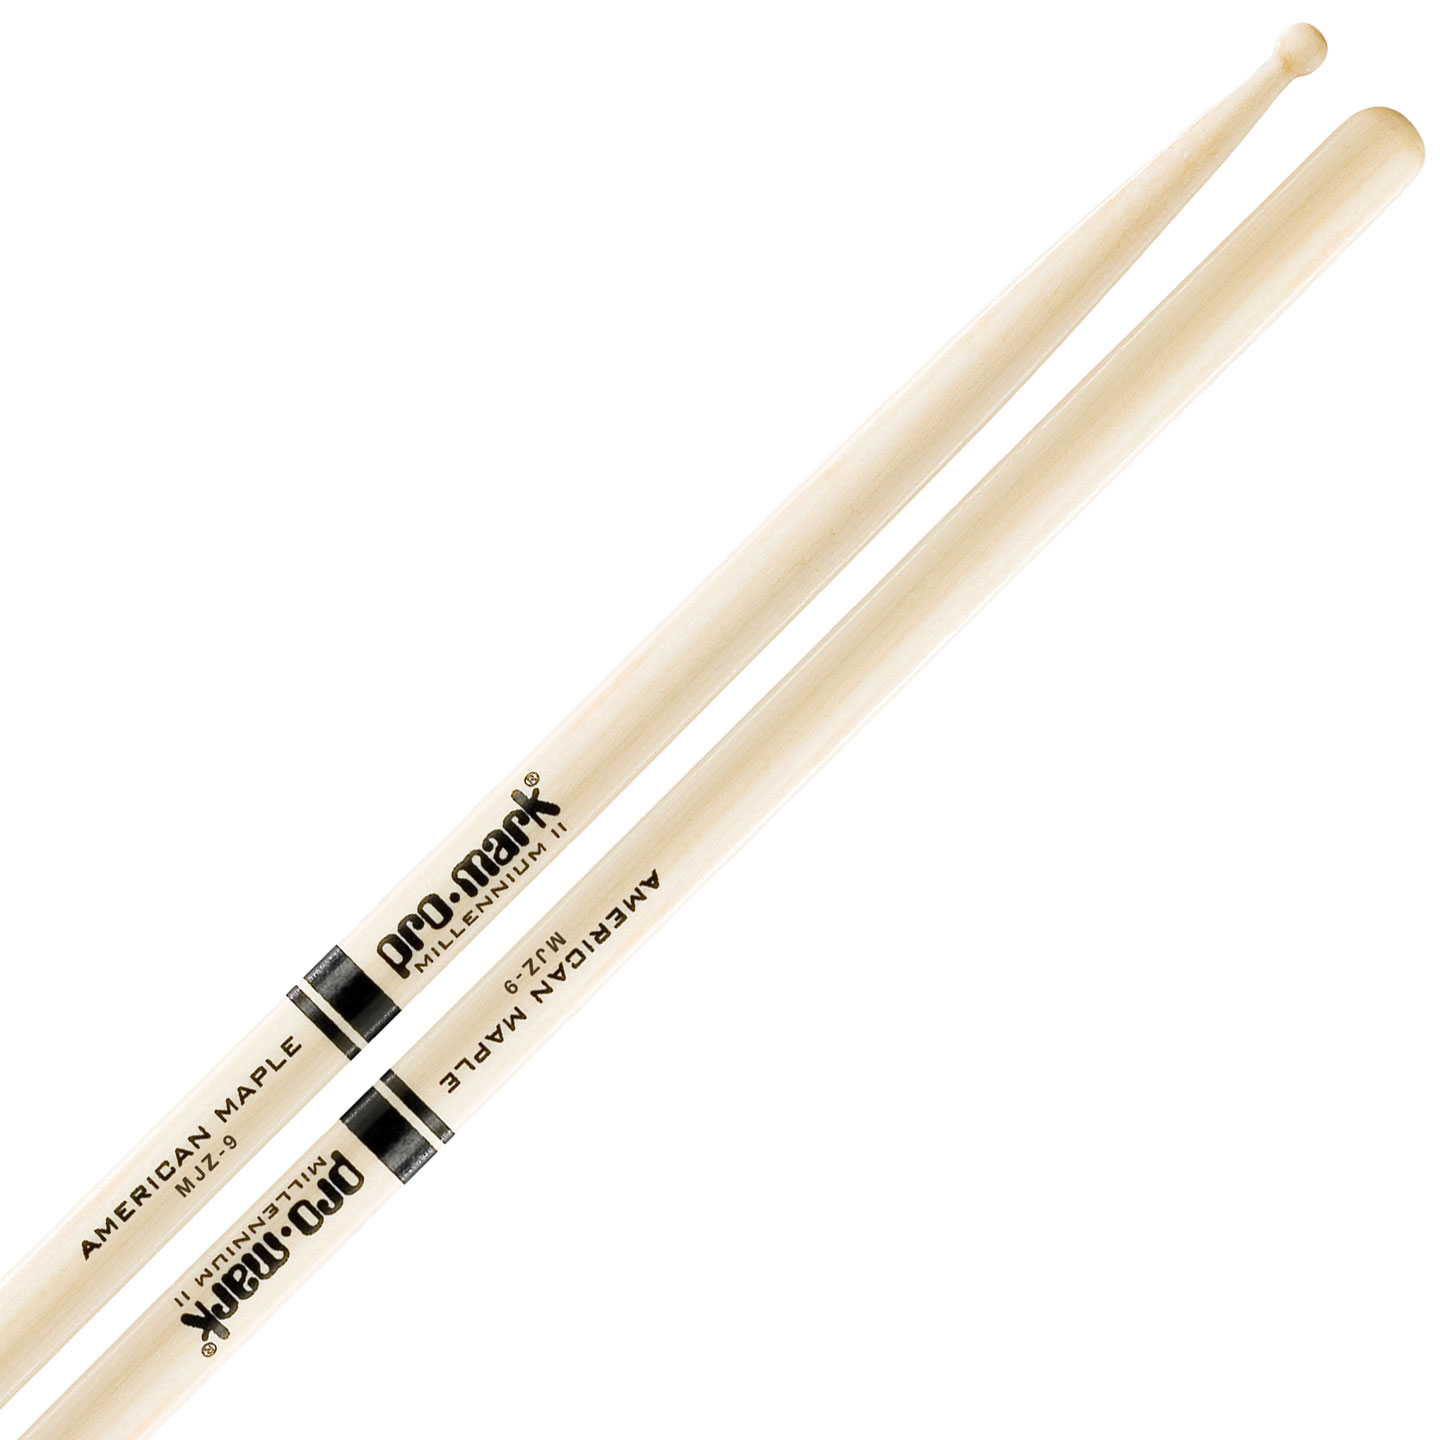 Promark JZ9 Maple Jazz Cafe Drumsticks